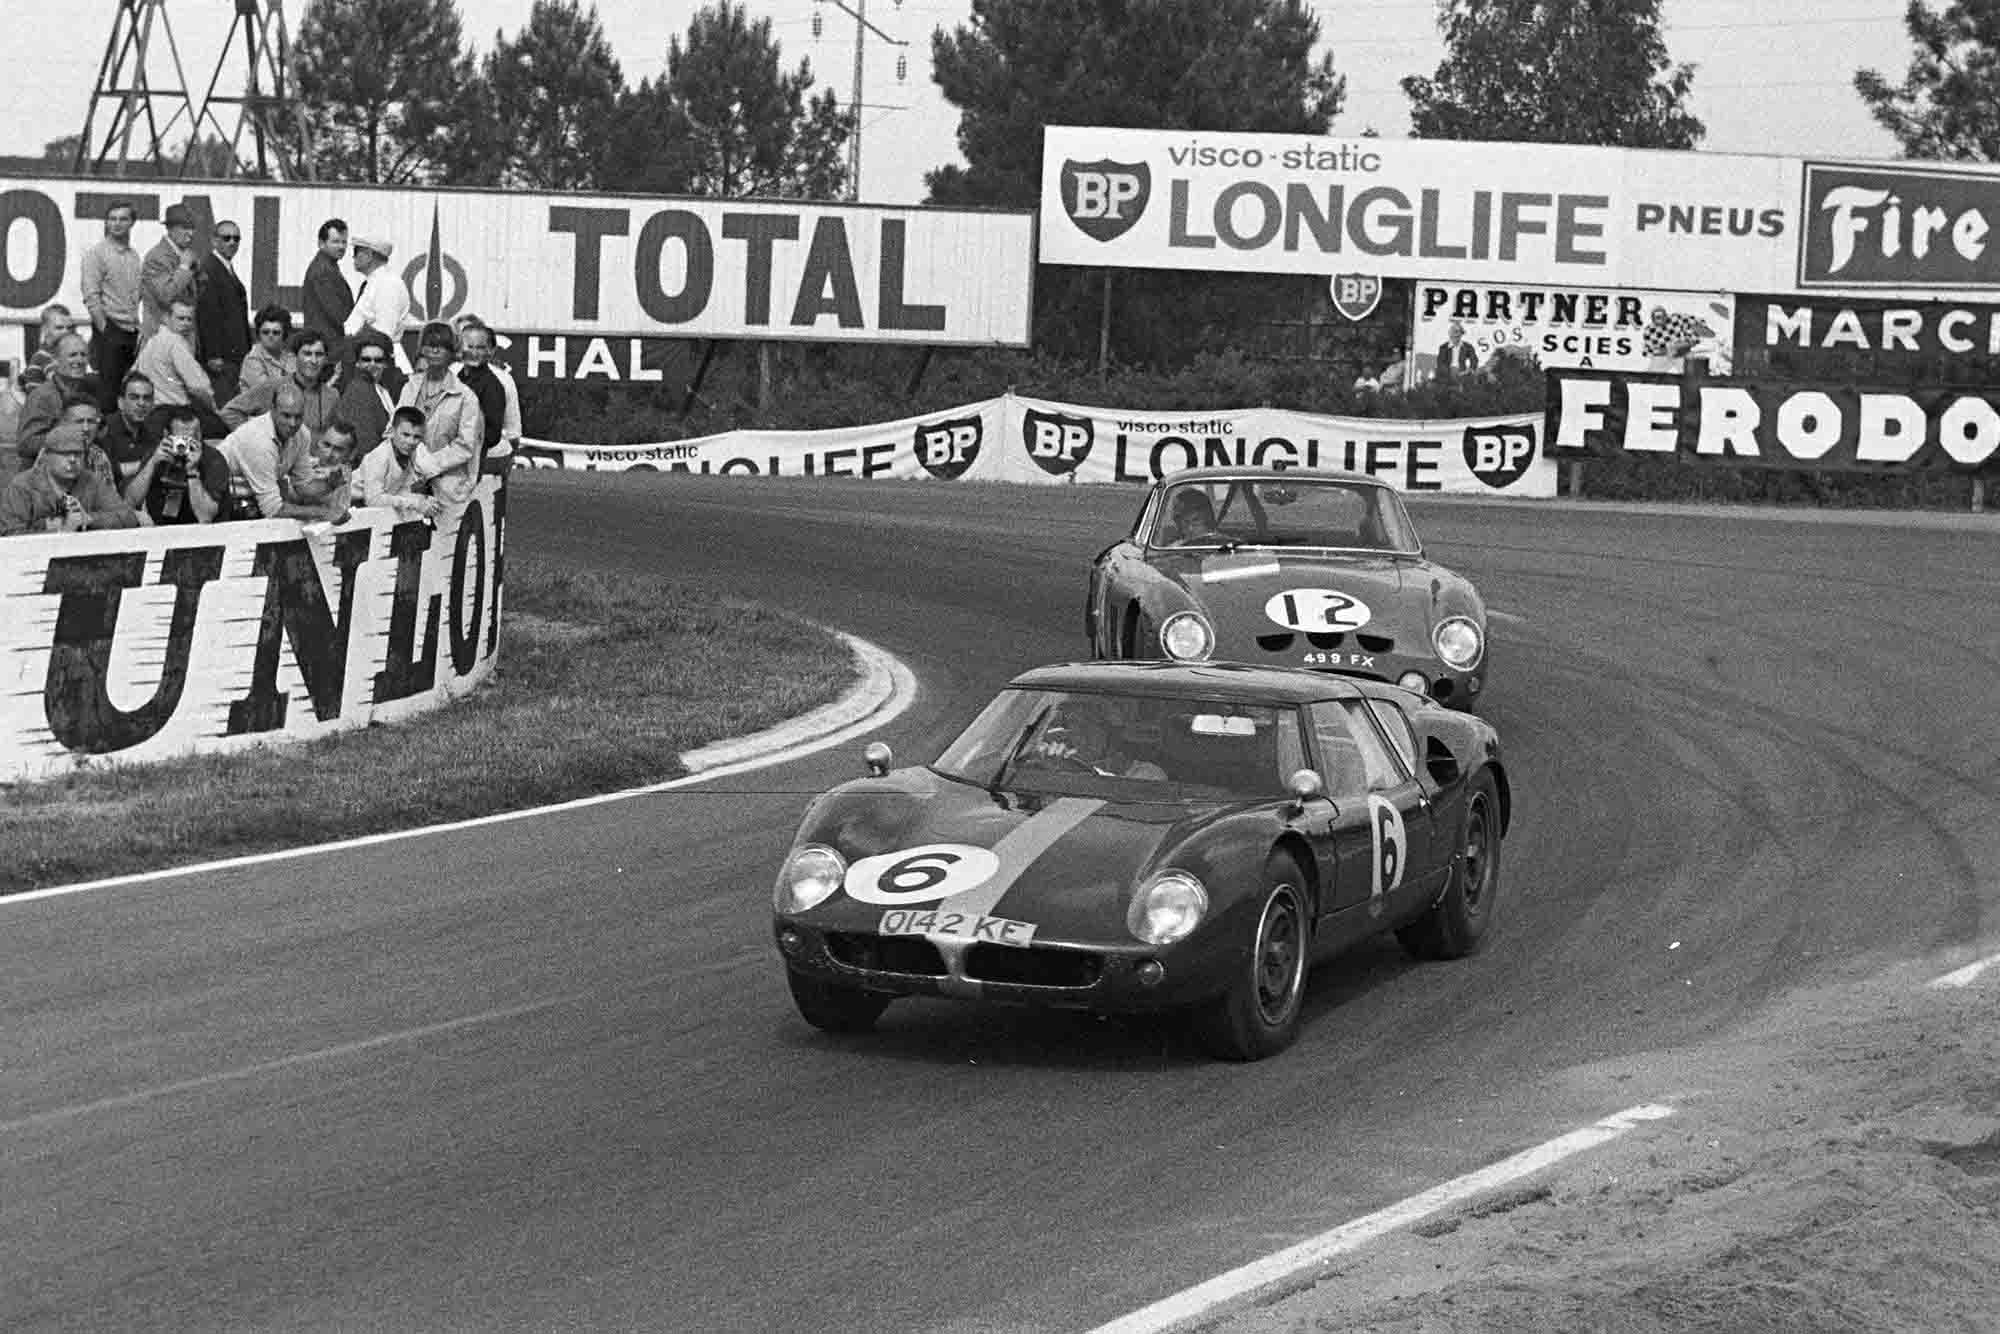 David Hobbs / Richard Attwood, Lola Cars, Lola Mk6 GT-Ford, leads Jack Sears / Mike Salmon, Maranello Concessionaires, Ferrari 330LMB at 1963 Le Mans